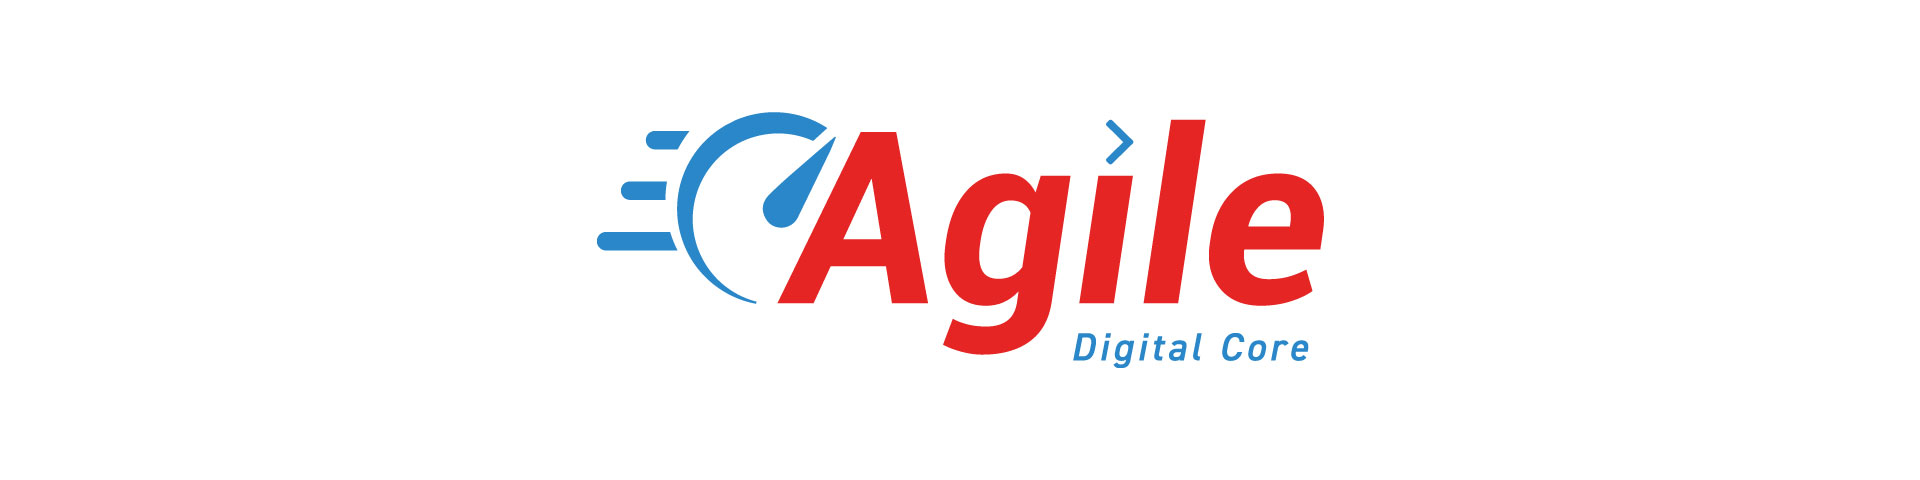 post agile digital core 1